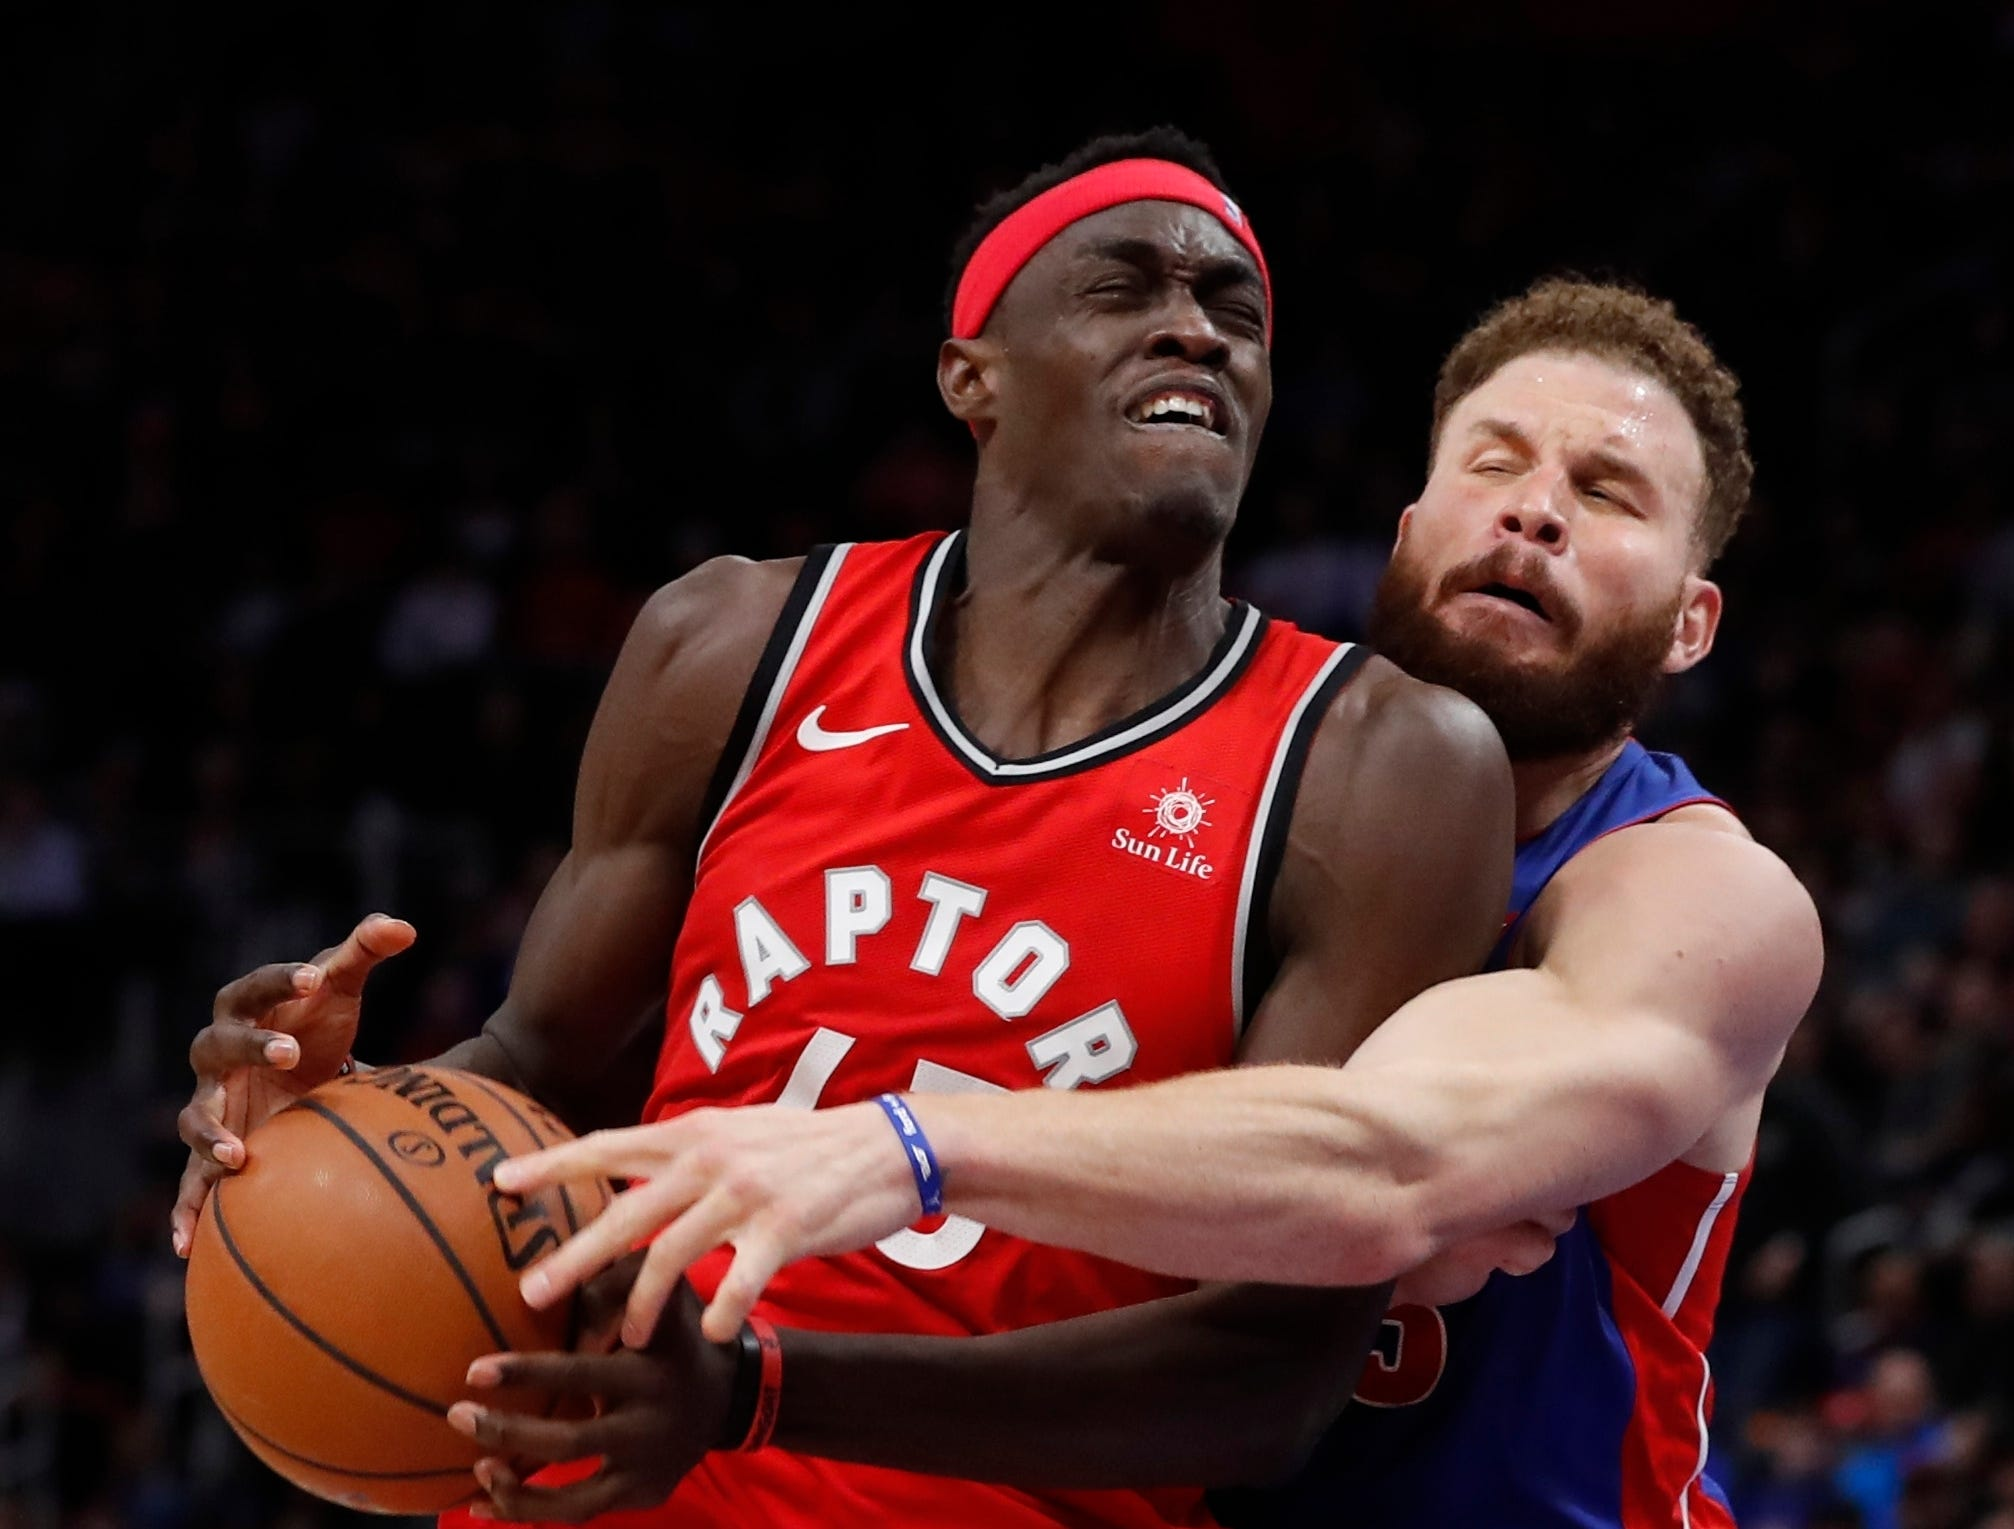 Detroit Pistons forward Blake Griffin knocks the ball away from Toronto Raptors forward Pascal Siakam during the second half.